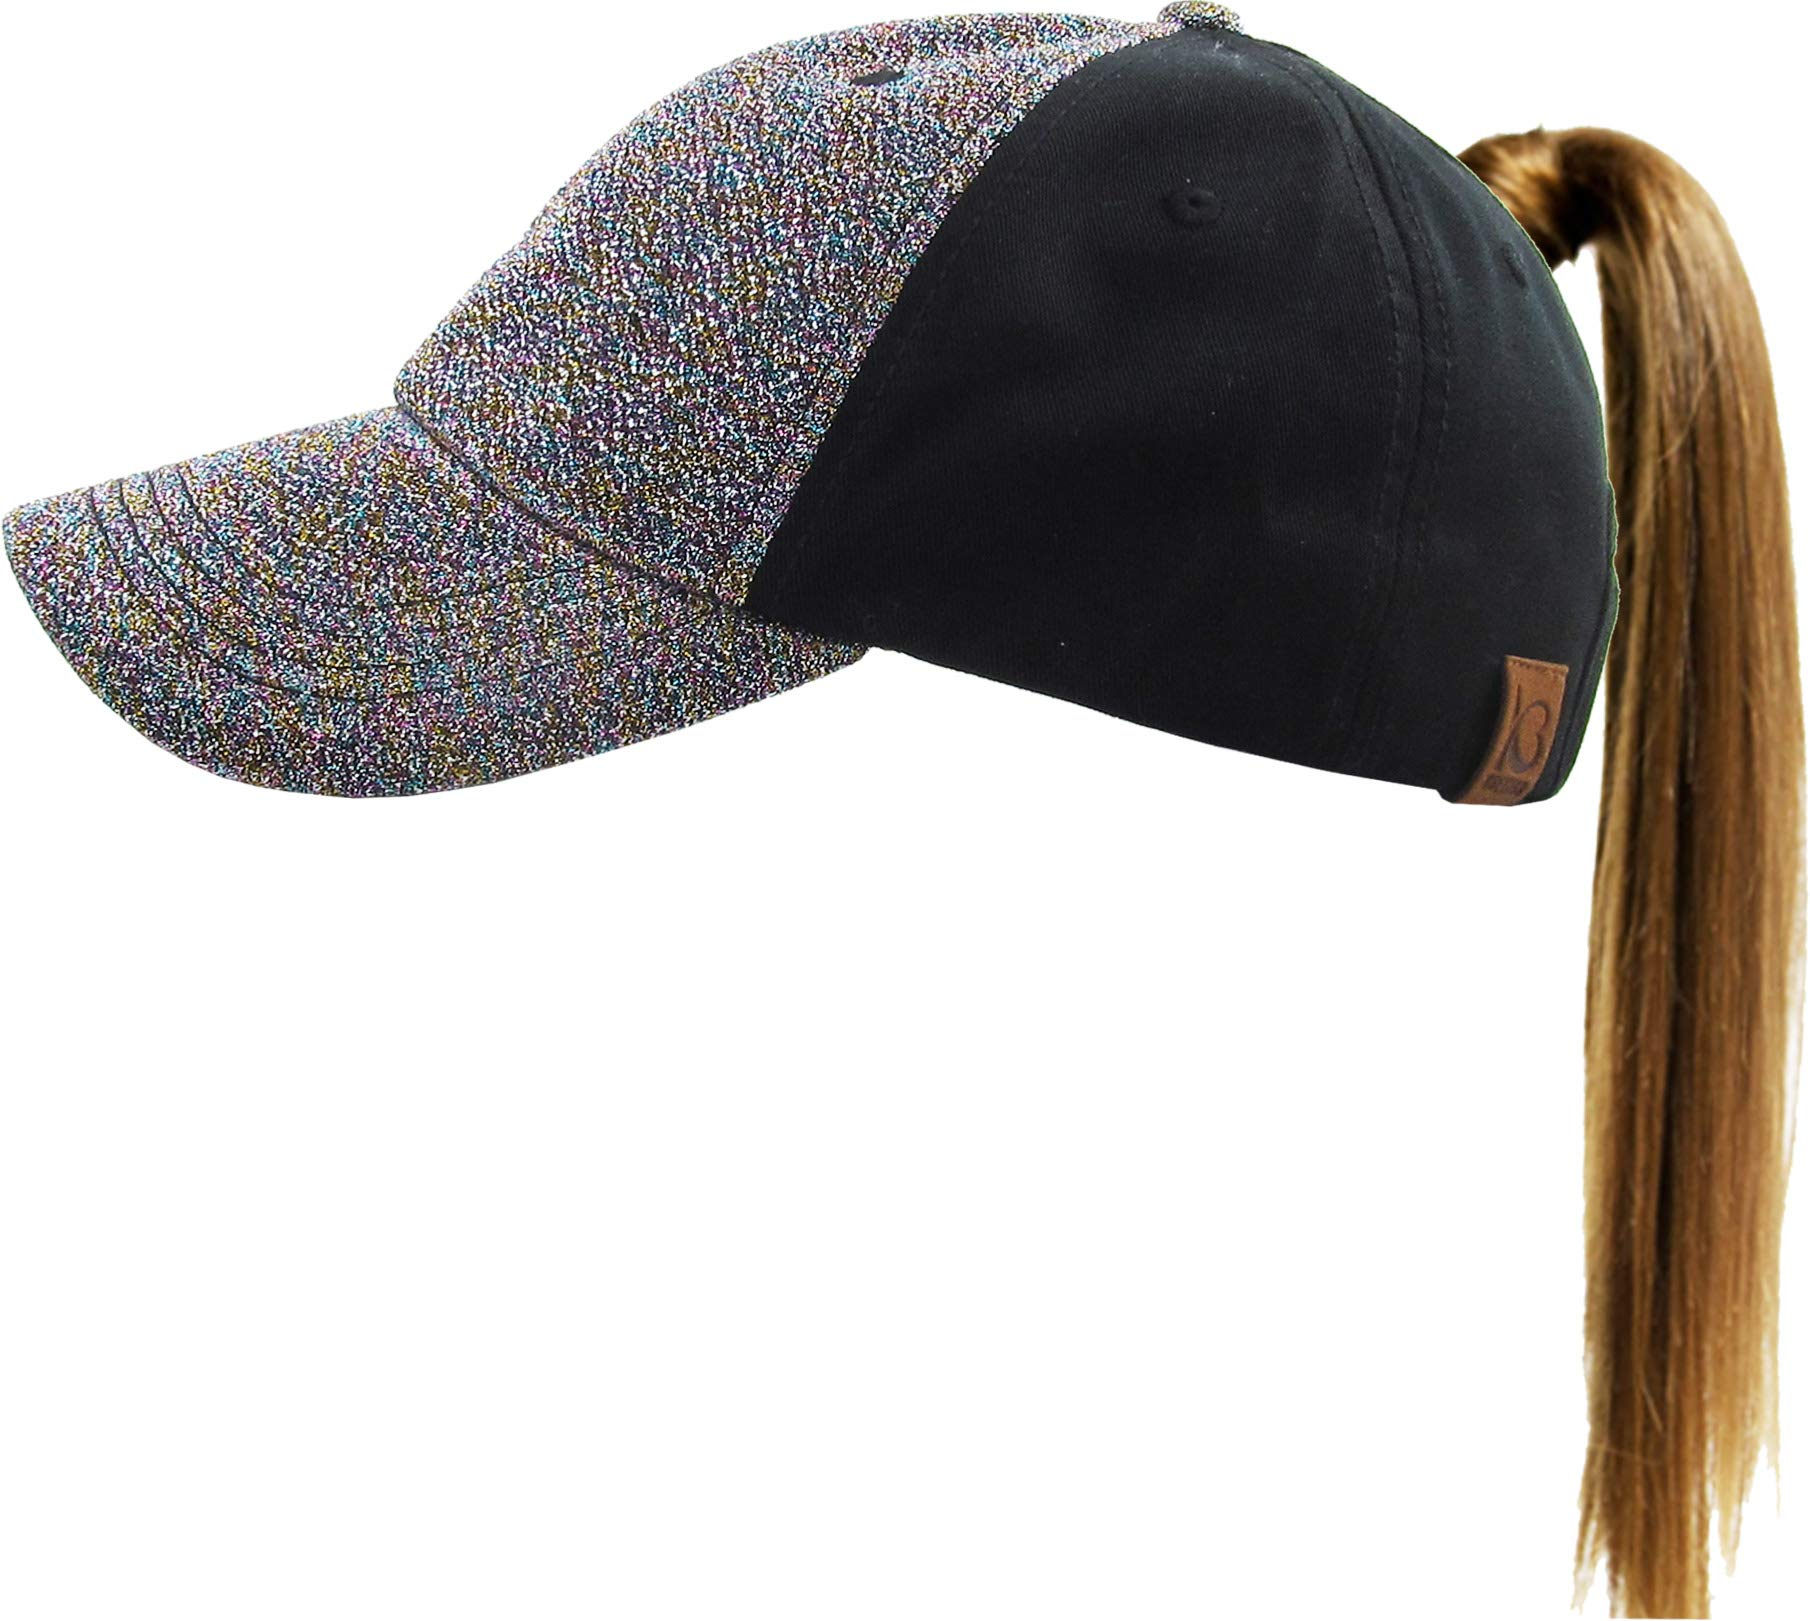 f34da4577f044 All That Glitter Ponytail Cap Comfy Sports Hat Daily Wear Messy High Bun  Fits Everyone product